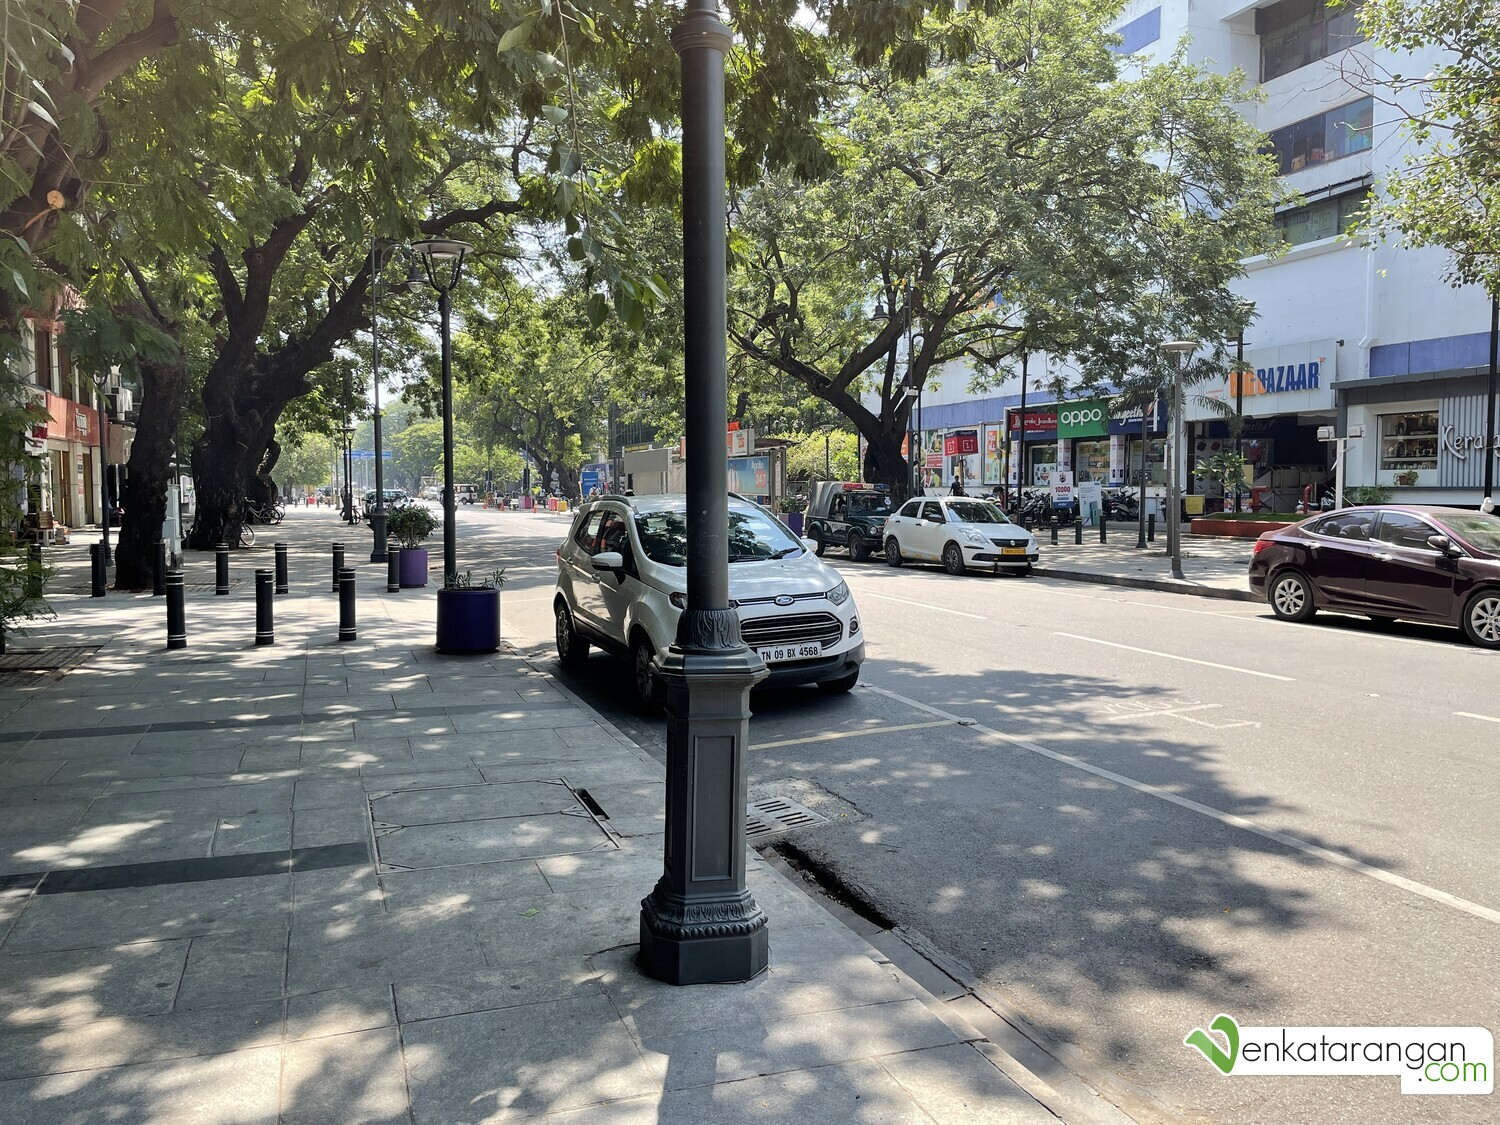 At 10 AM, the footpath and the curbside parking are mostly empty